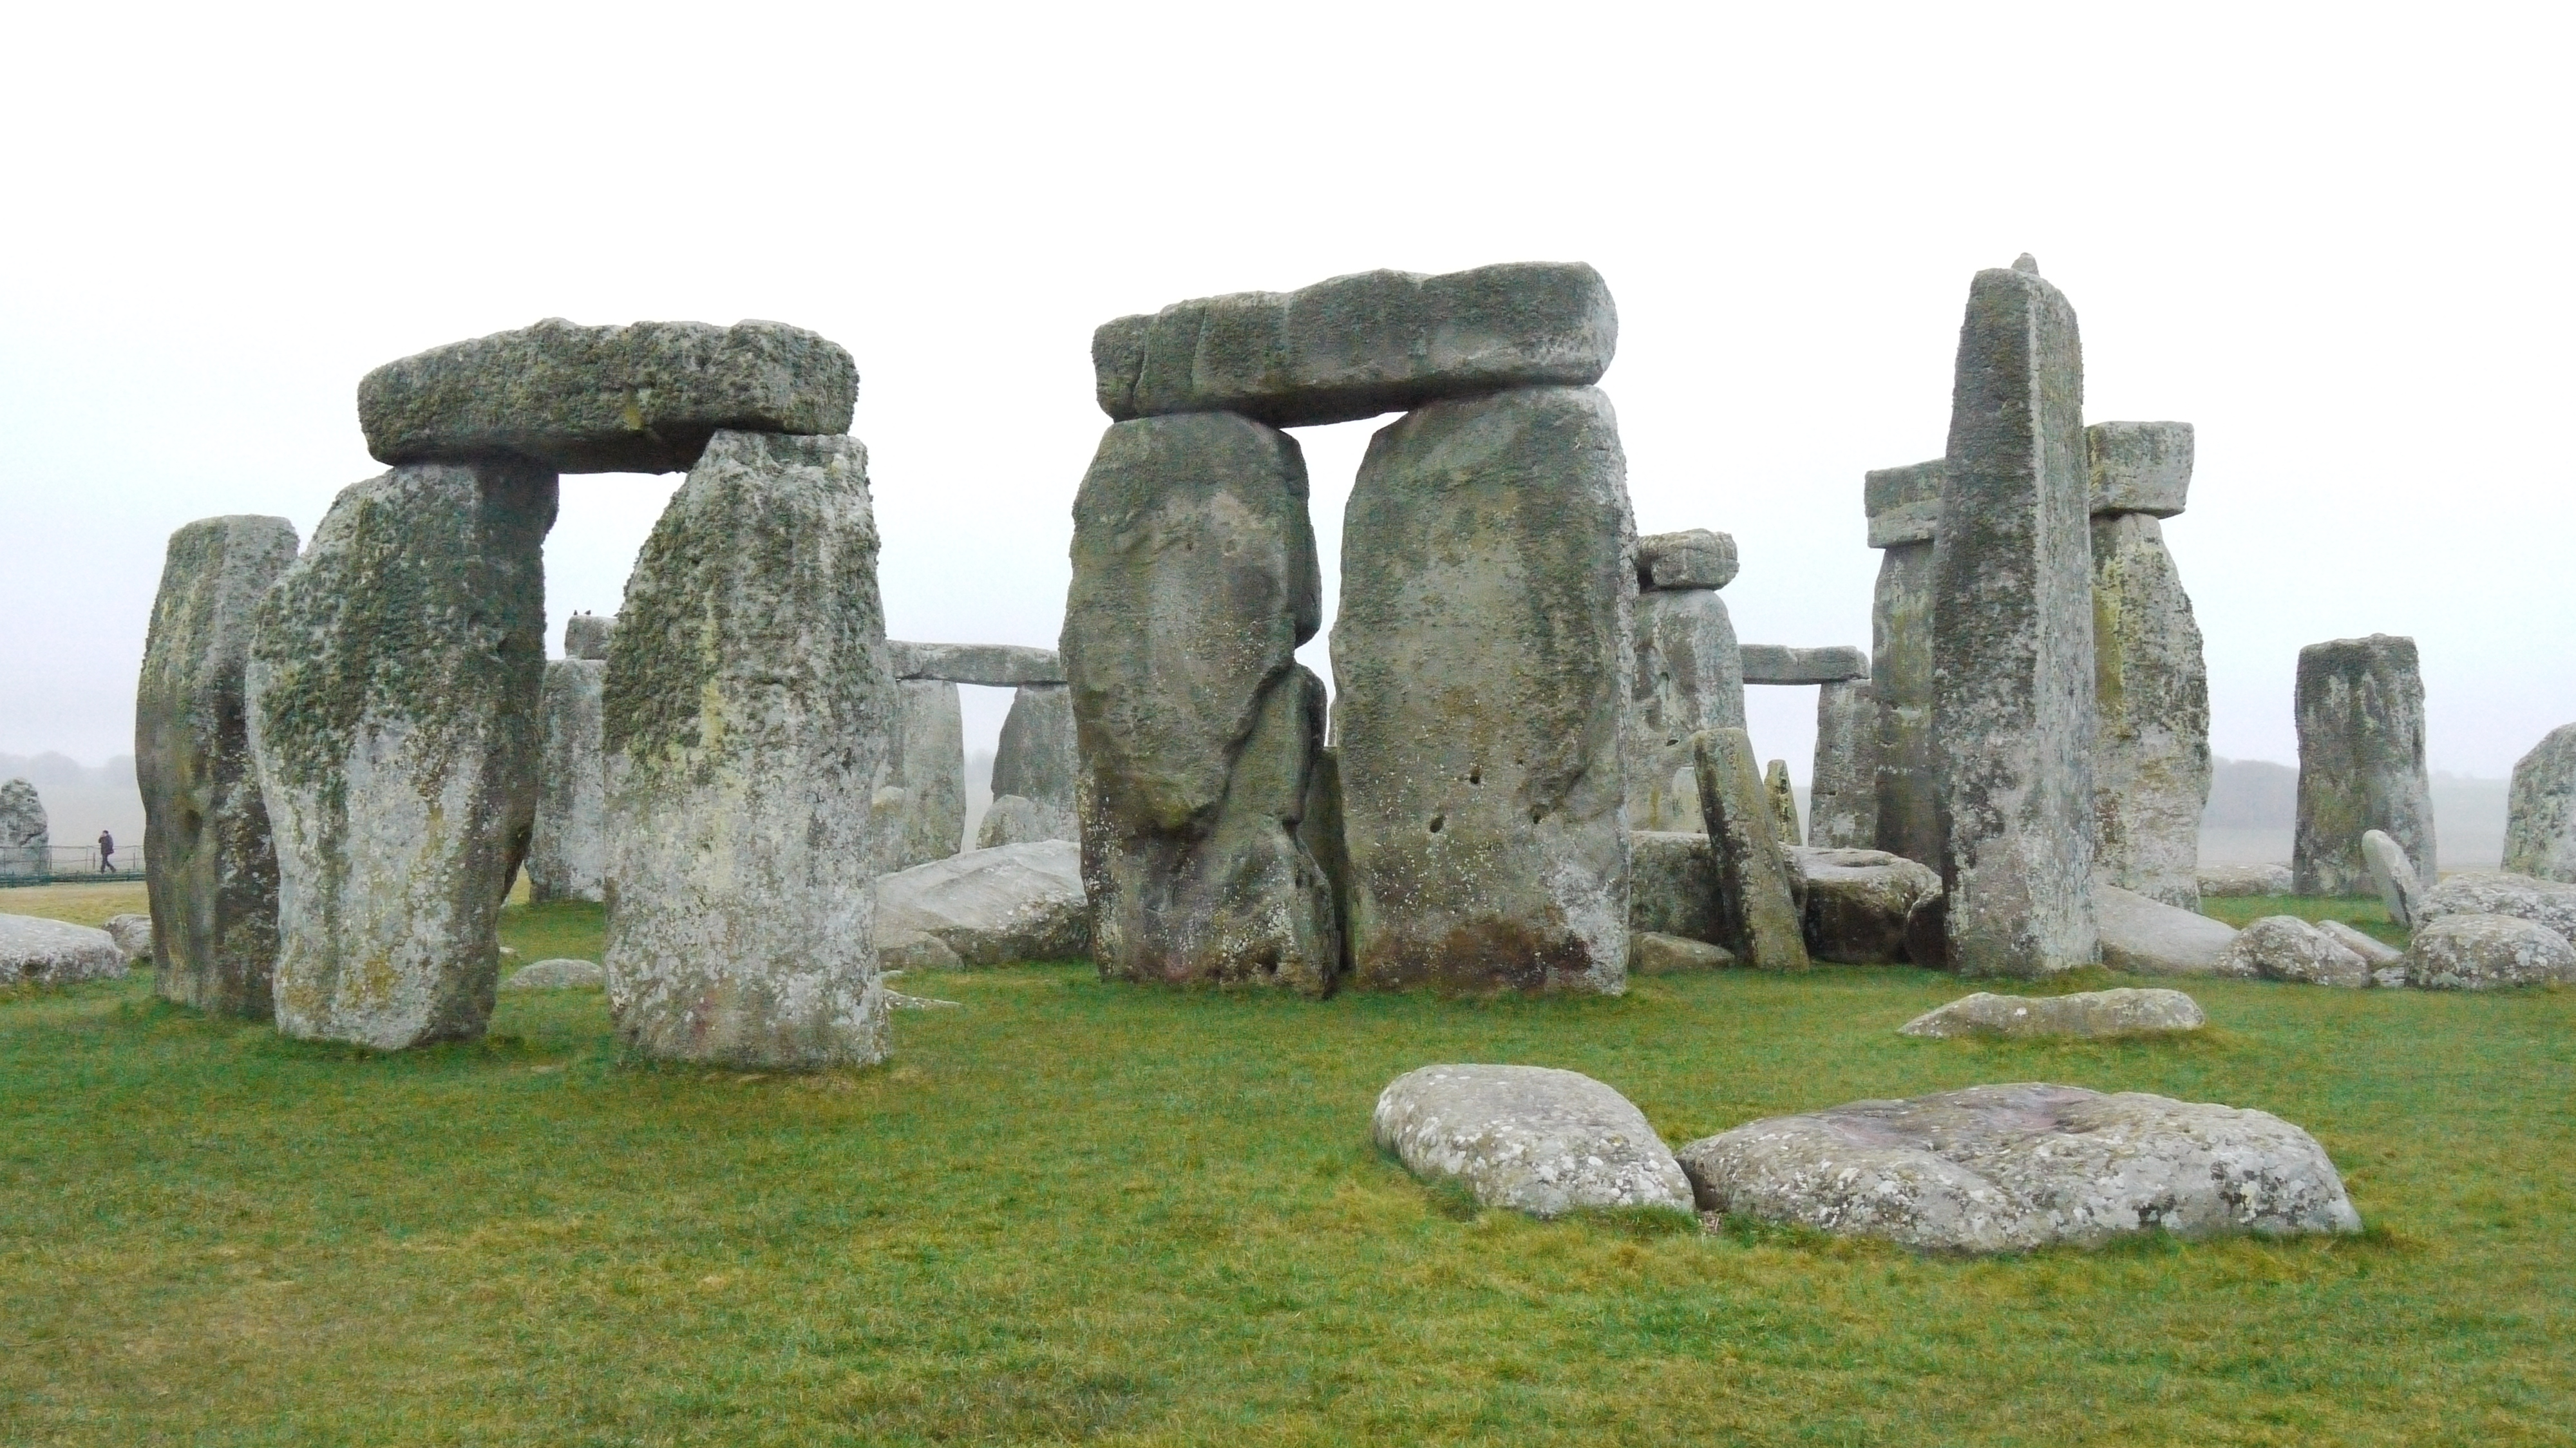 stonehenge architecture essays The second phase of work at stonehenge occurred approximately 100-200 years later and involved the setting up of upright wooden posts, possibly of a roofed structure, in the center of the henge, as well as more upright posts near the northeast and southern entrances.